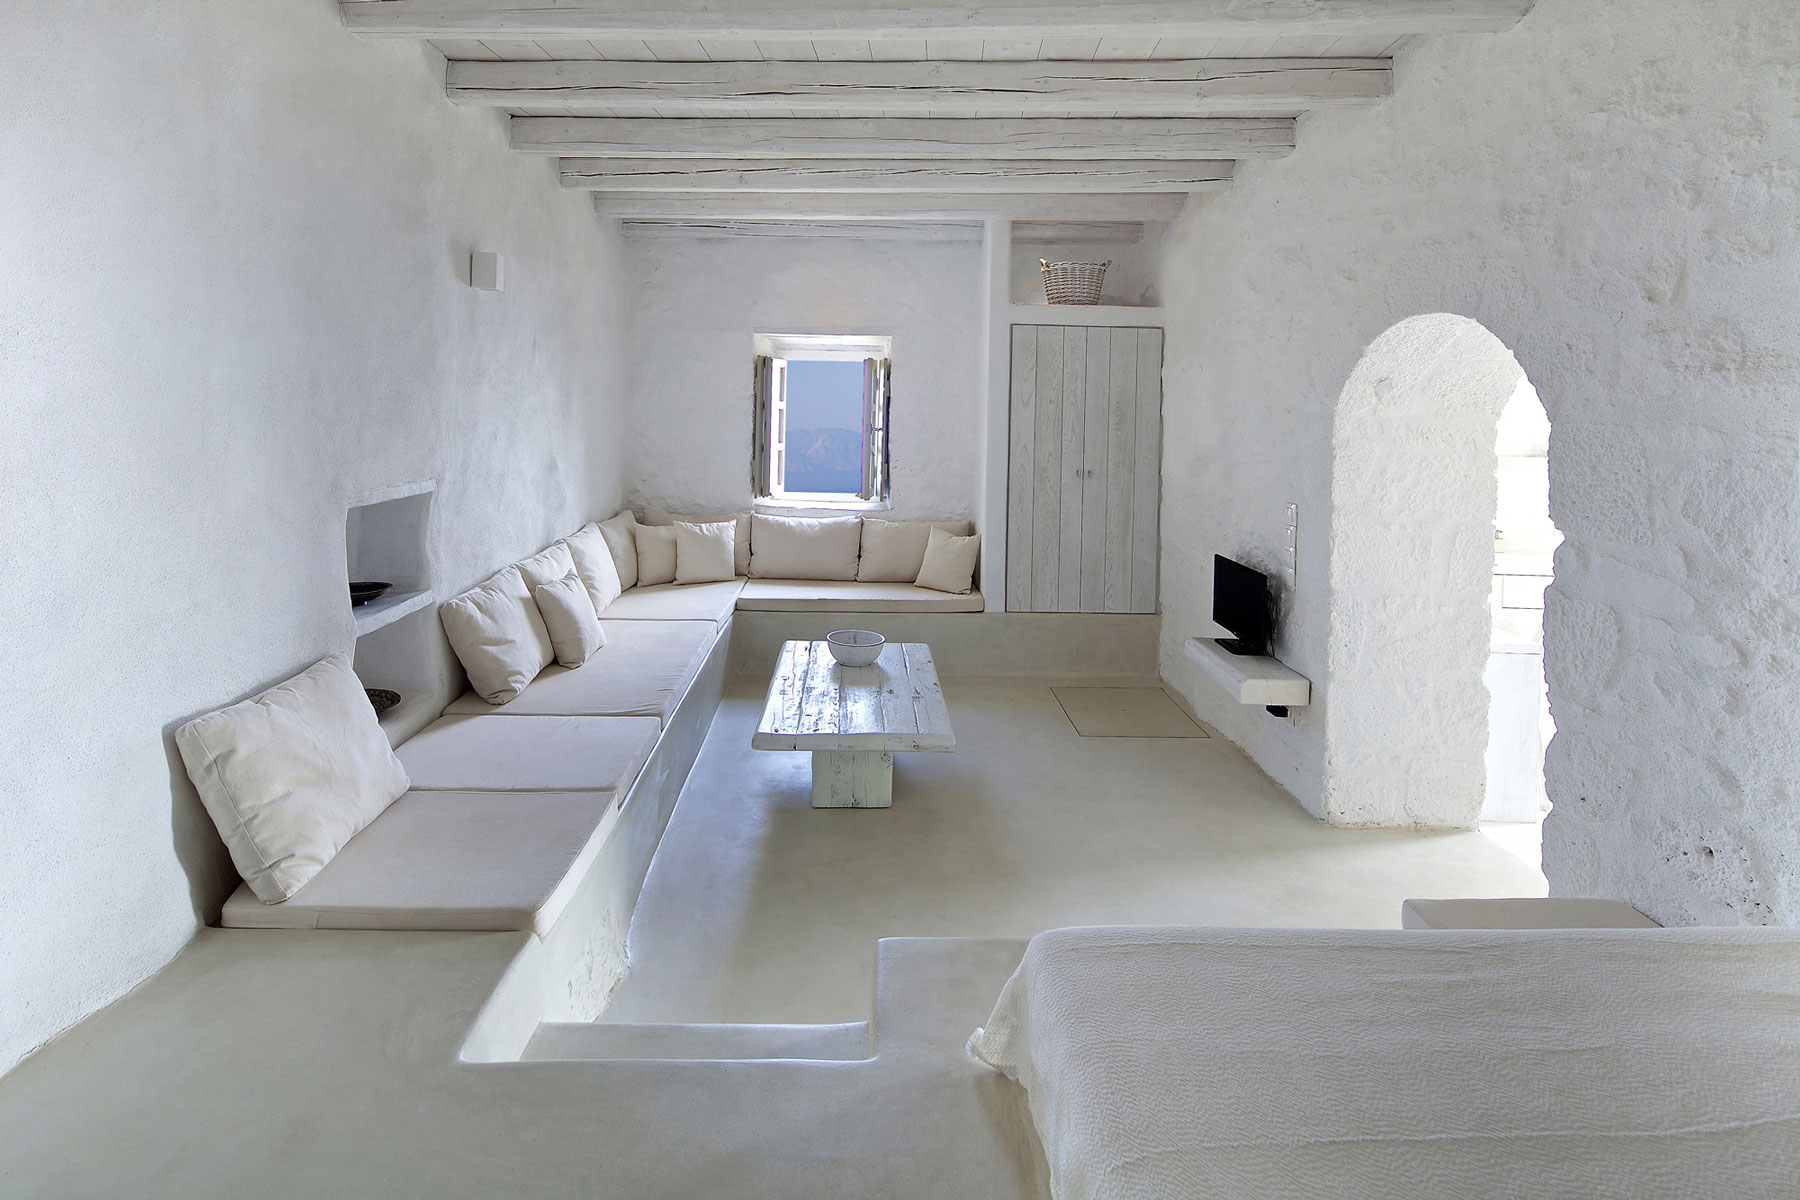 Restoration of a traditional residence in nisyros by adarchitects the greek foundation